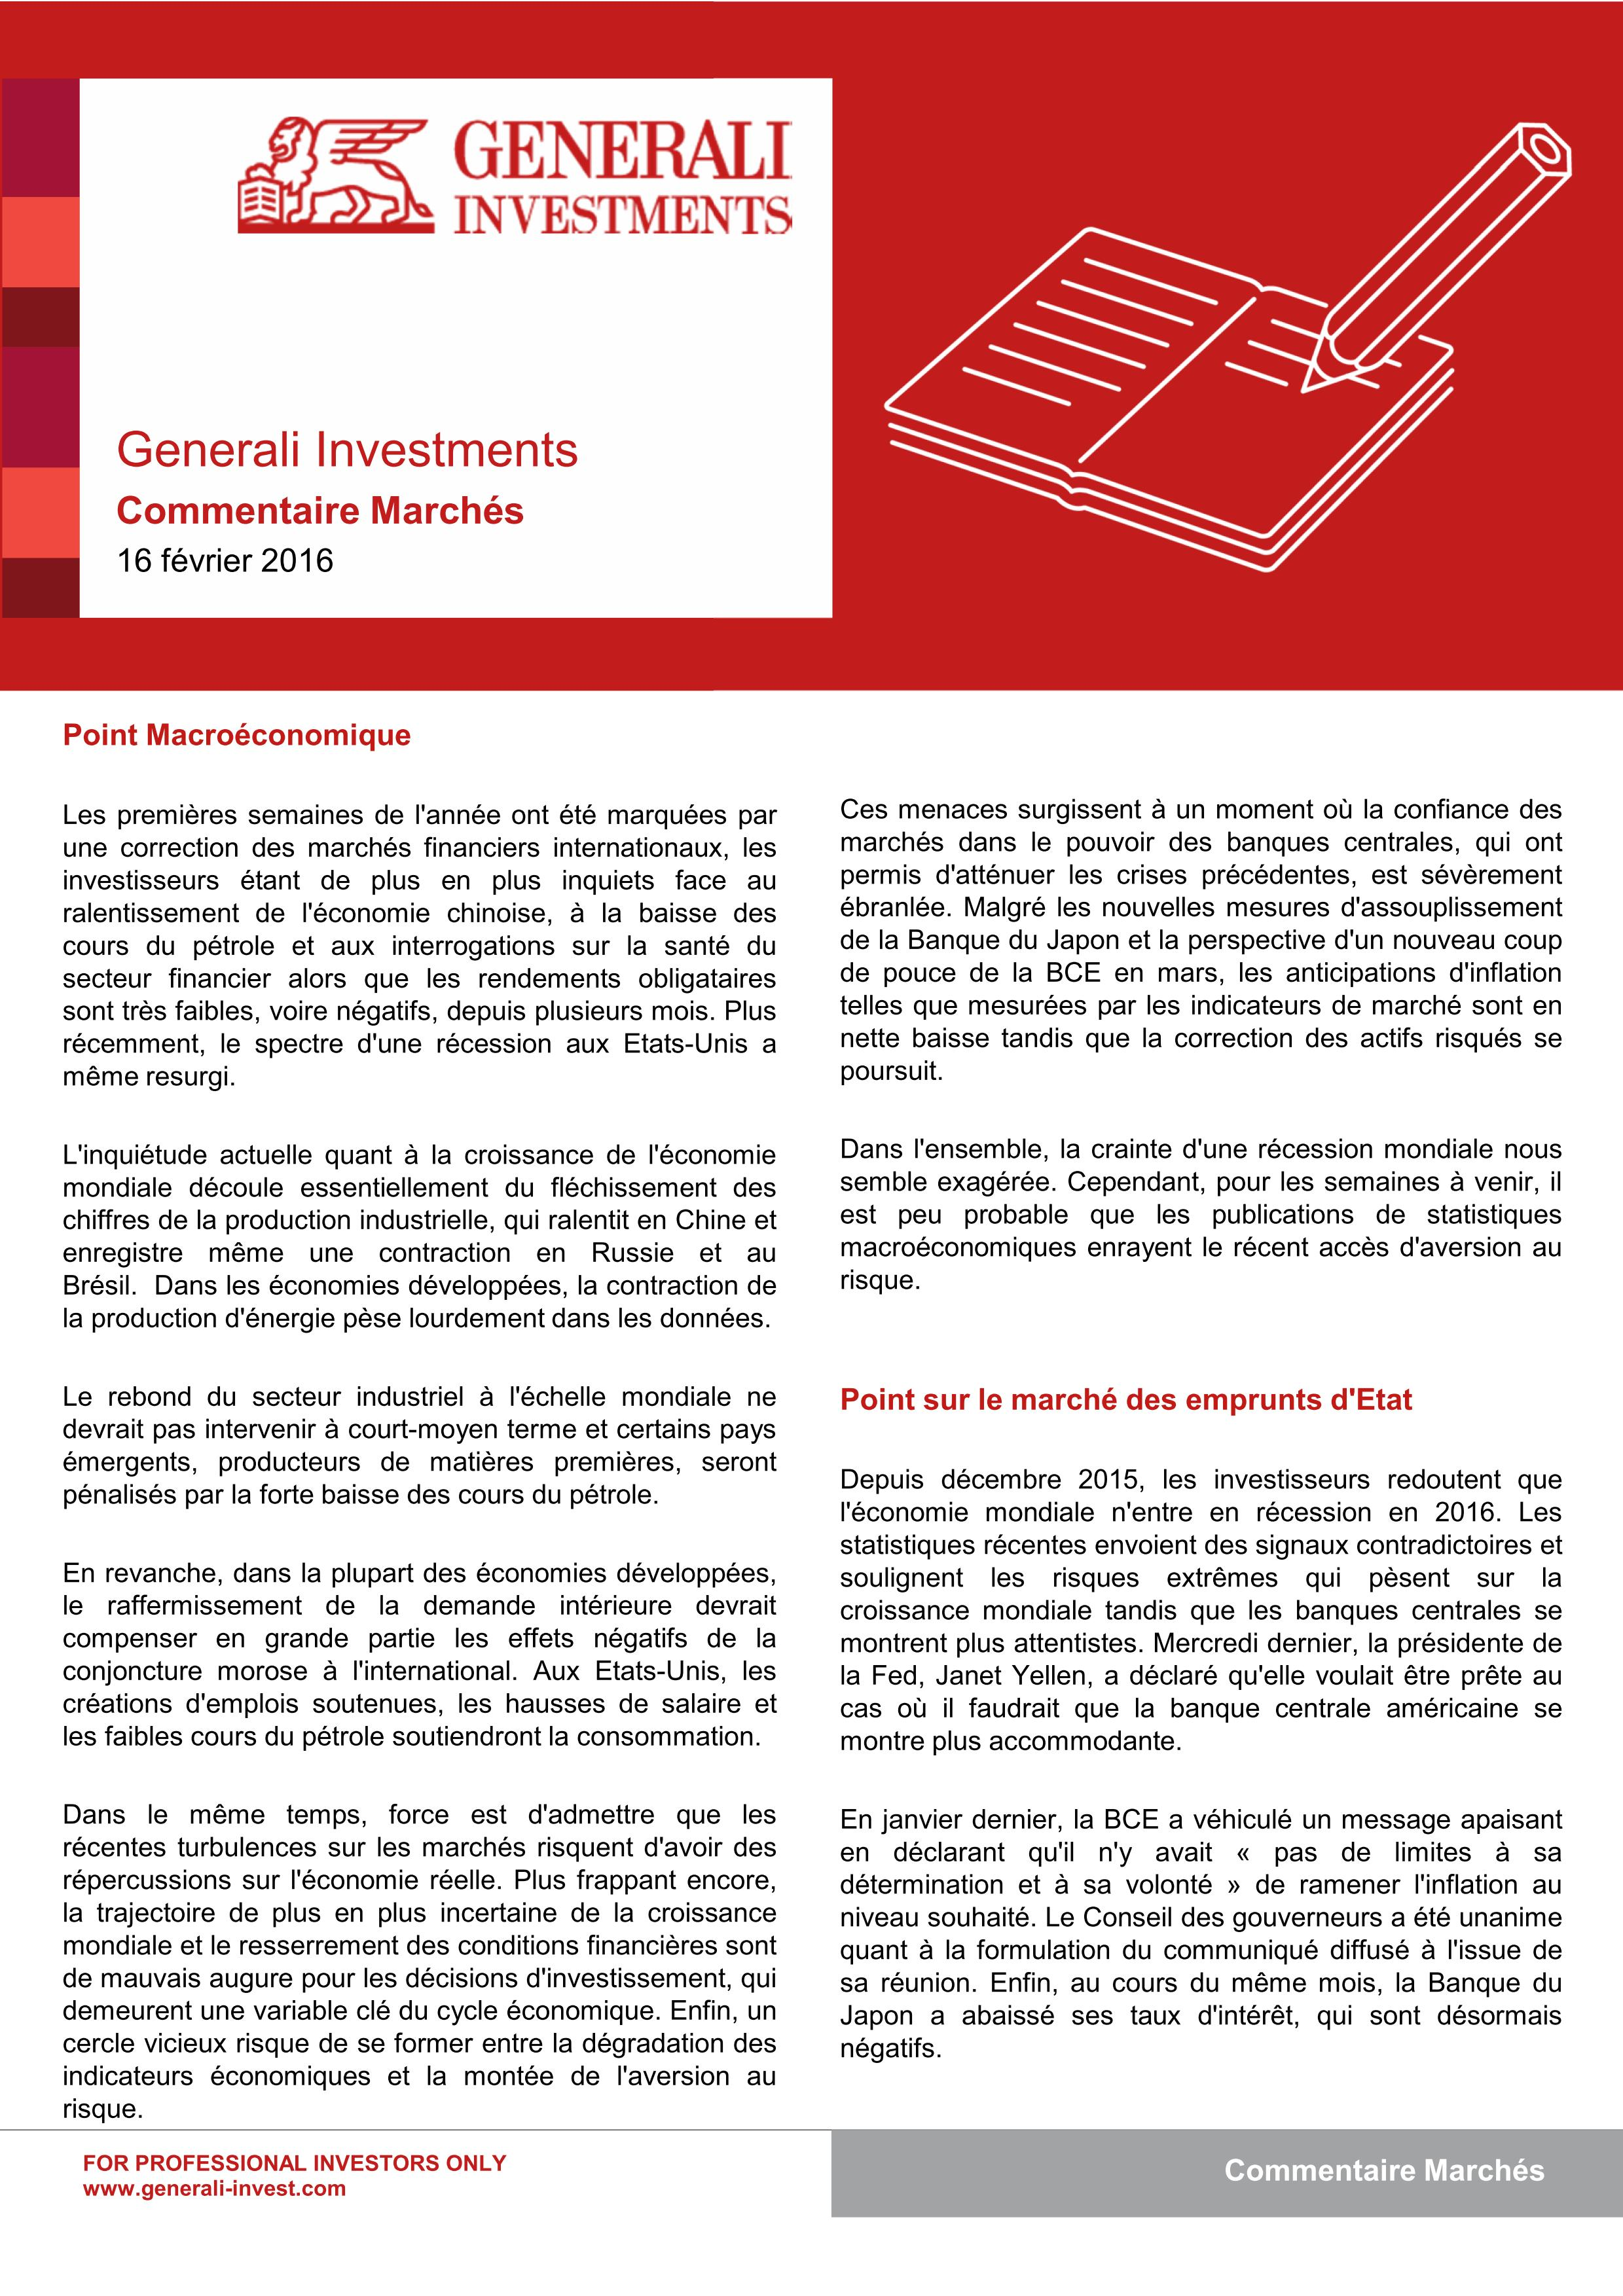 GeneraliInvestments_ComentaireMarches_16Fev2016_01